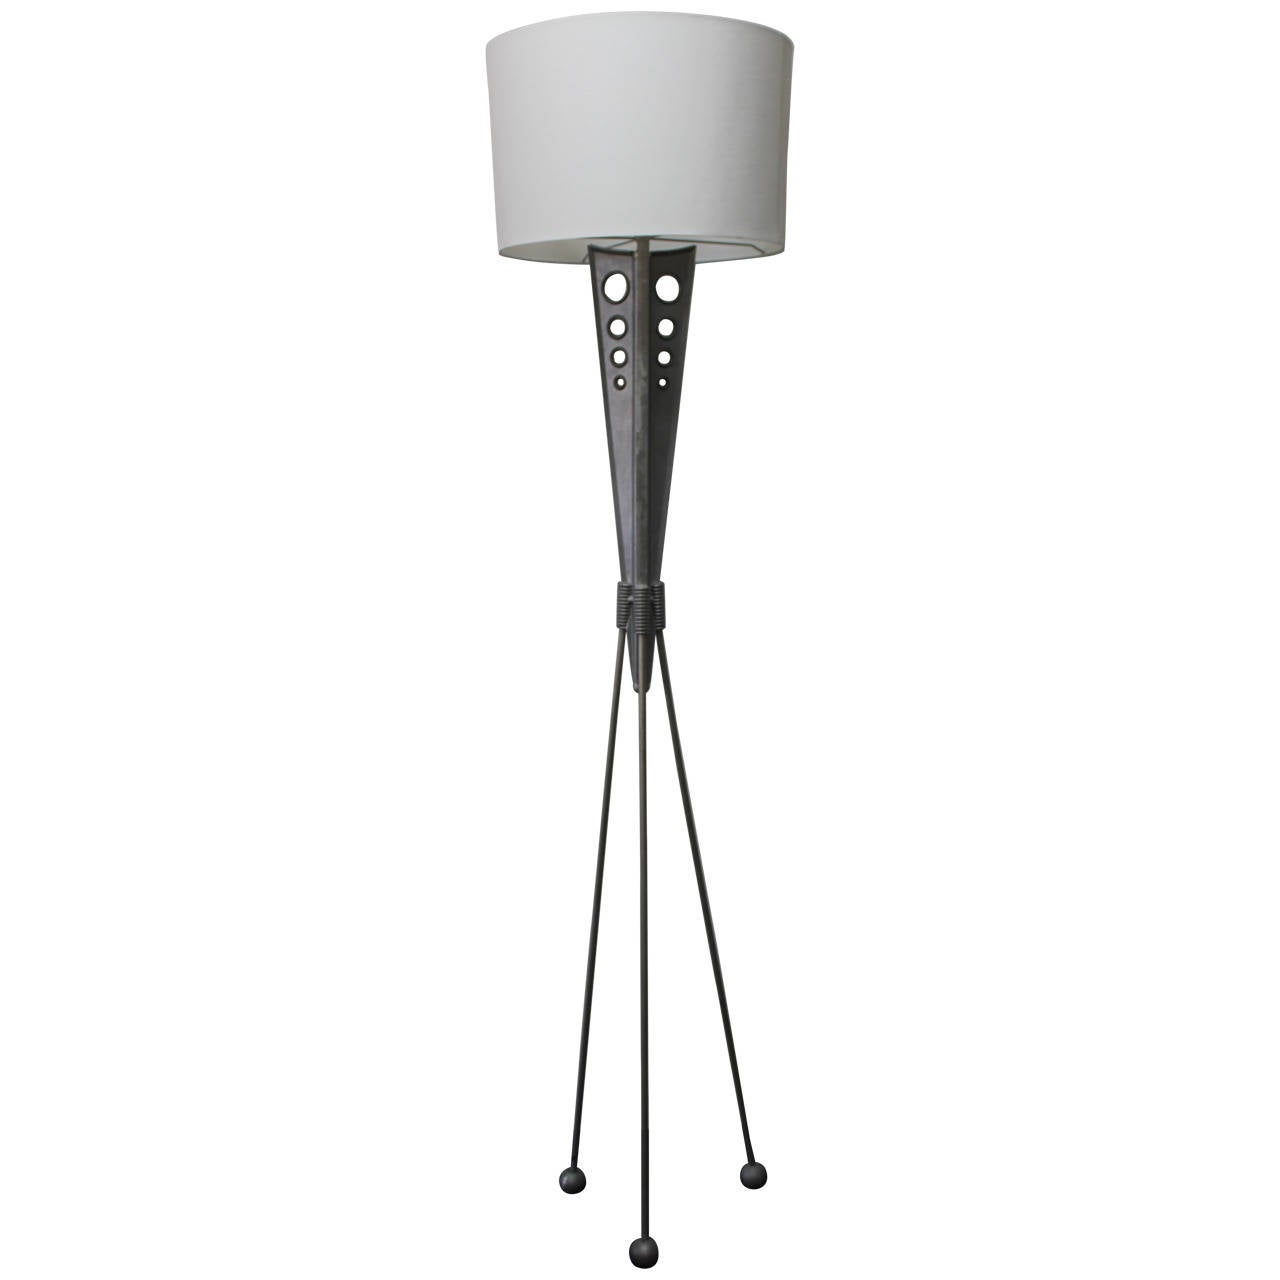 Floor lamp by relux milano italy at 1stdibs for Milano chrome floor lamp